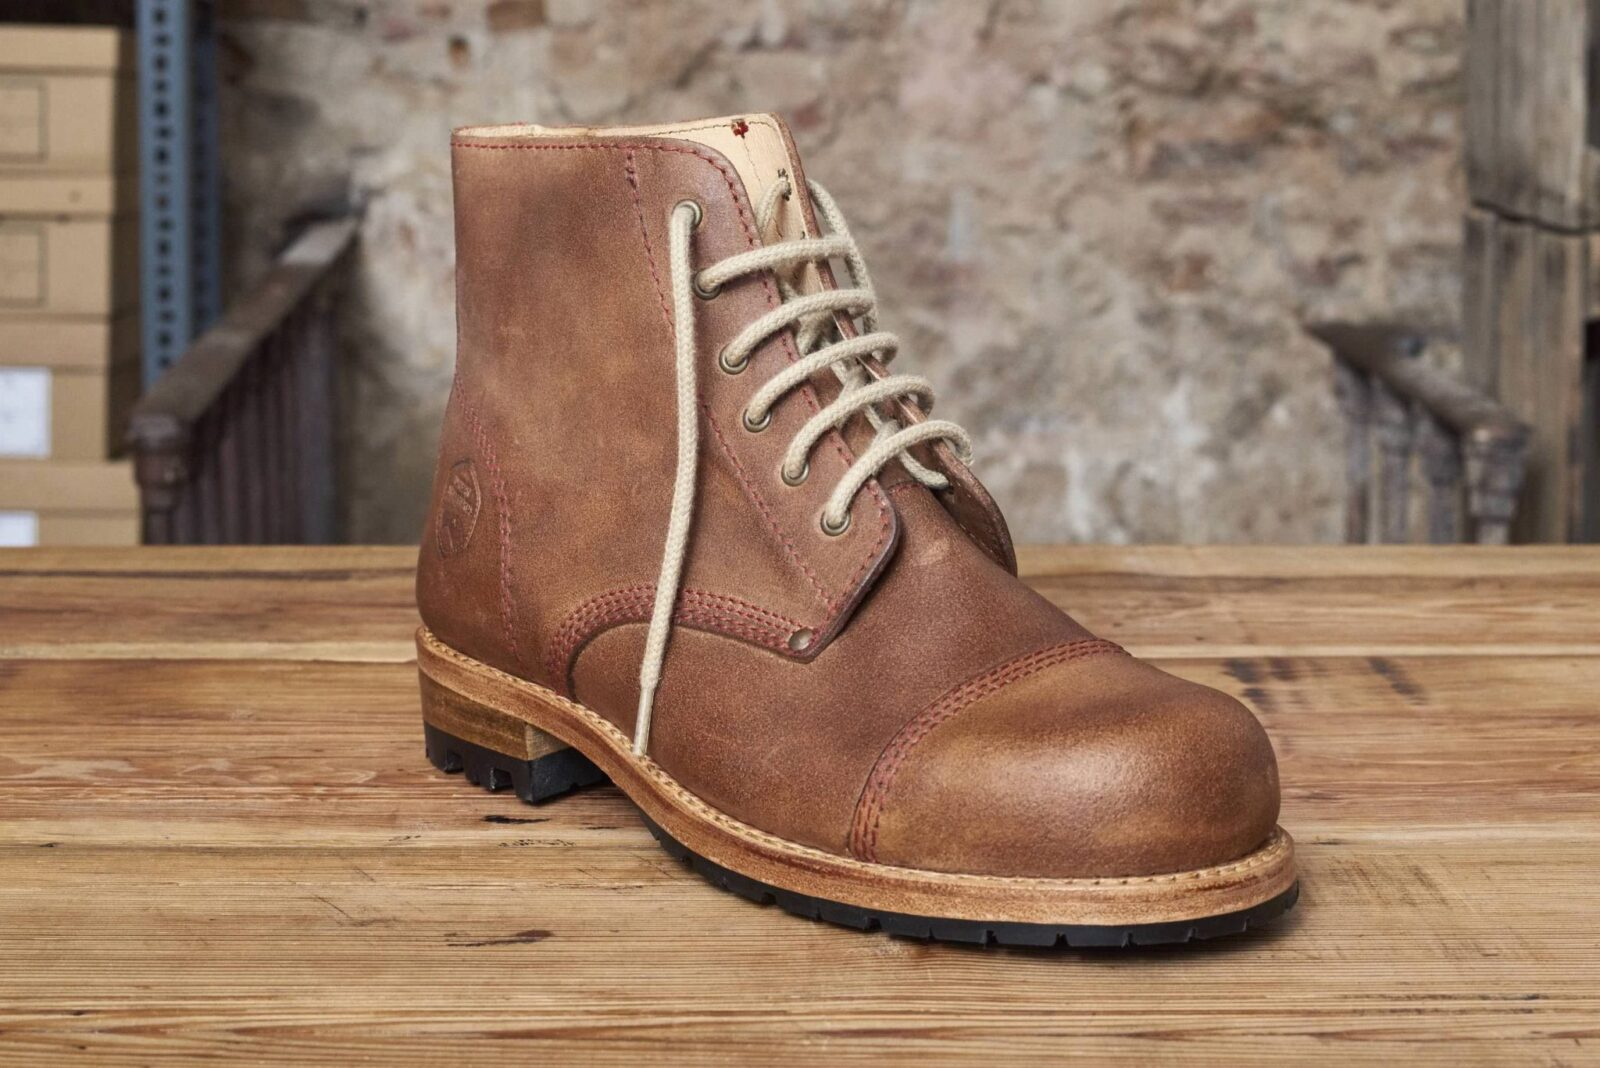 Urban Shepards Country Boots 1600x1068 - Urban Shepards Country Boots